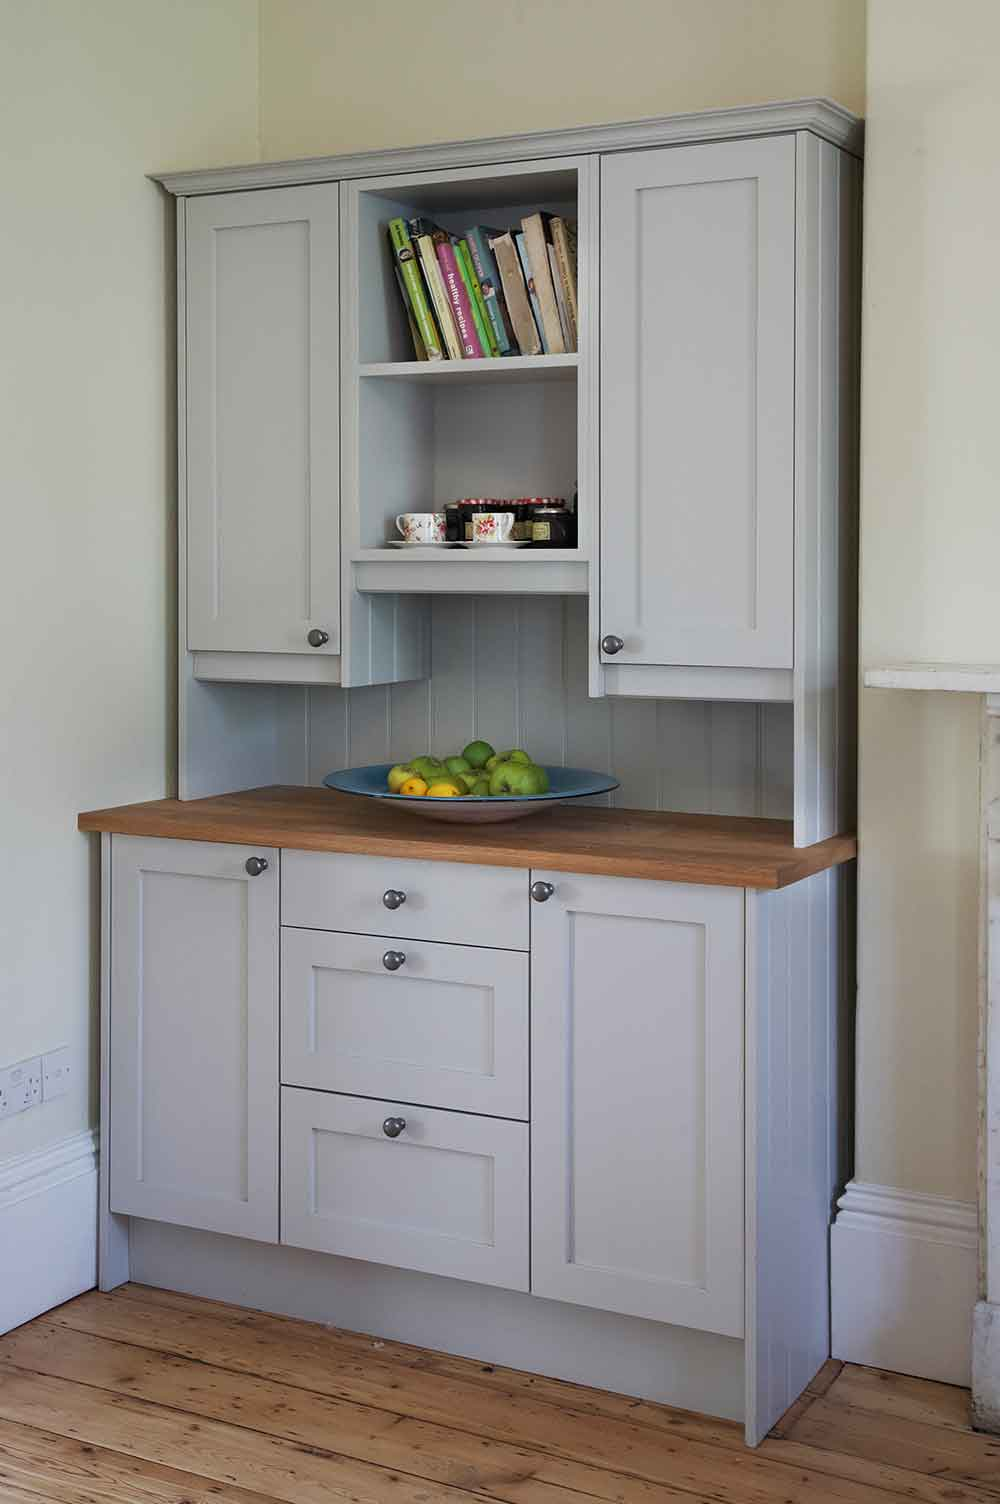 Bespoke french classic kitchen single cupboard